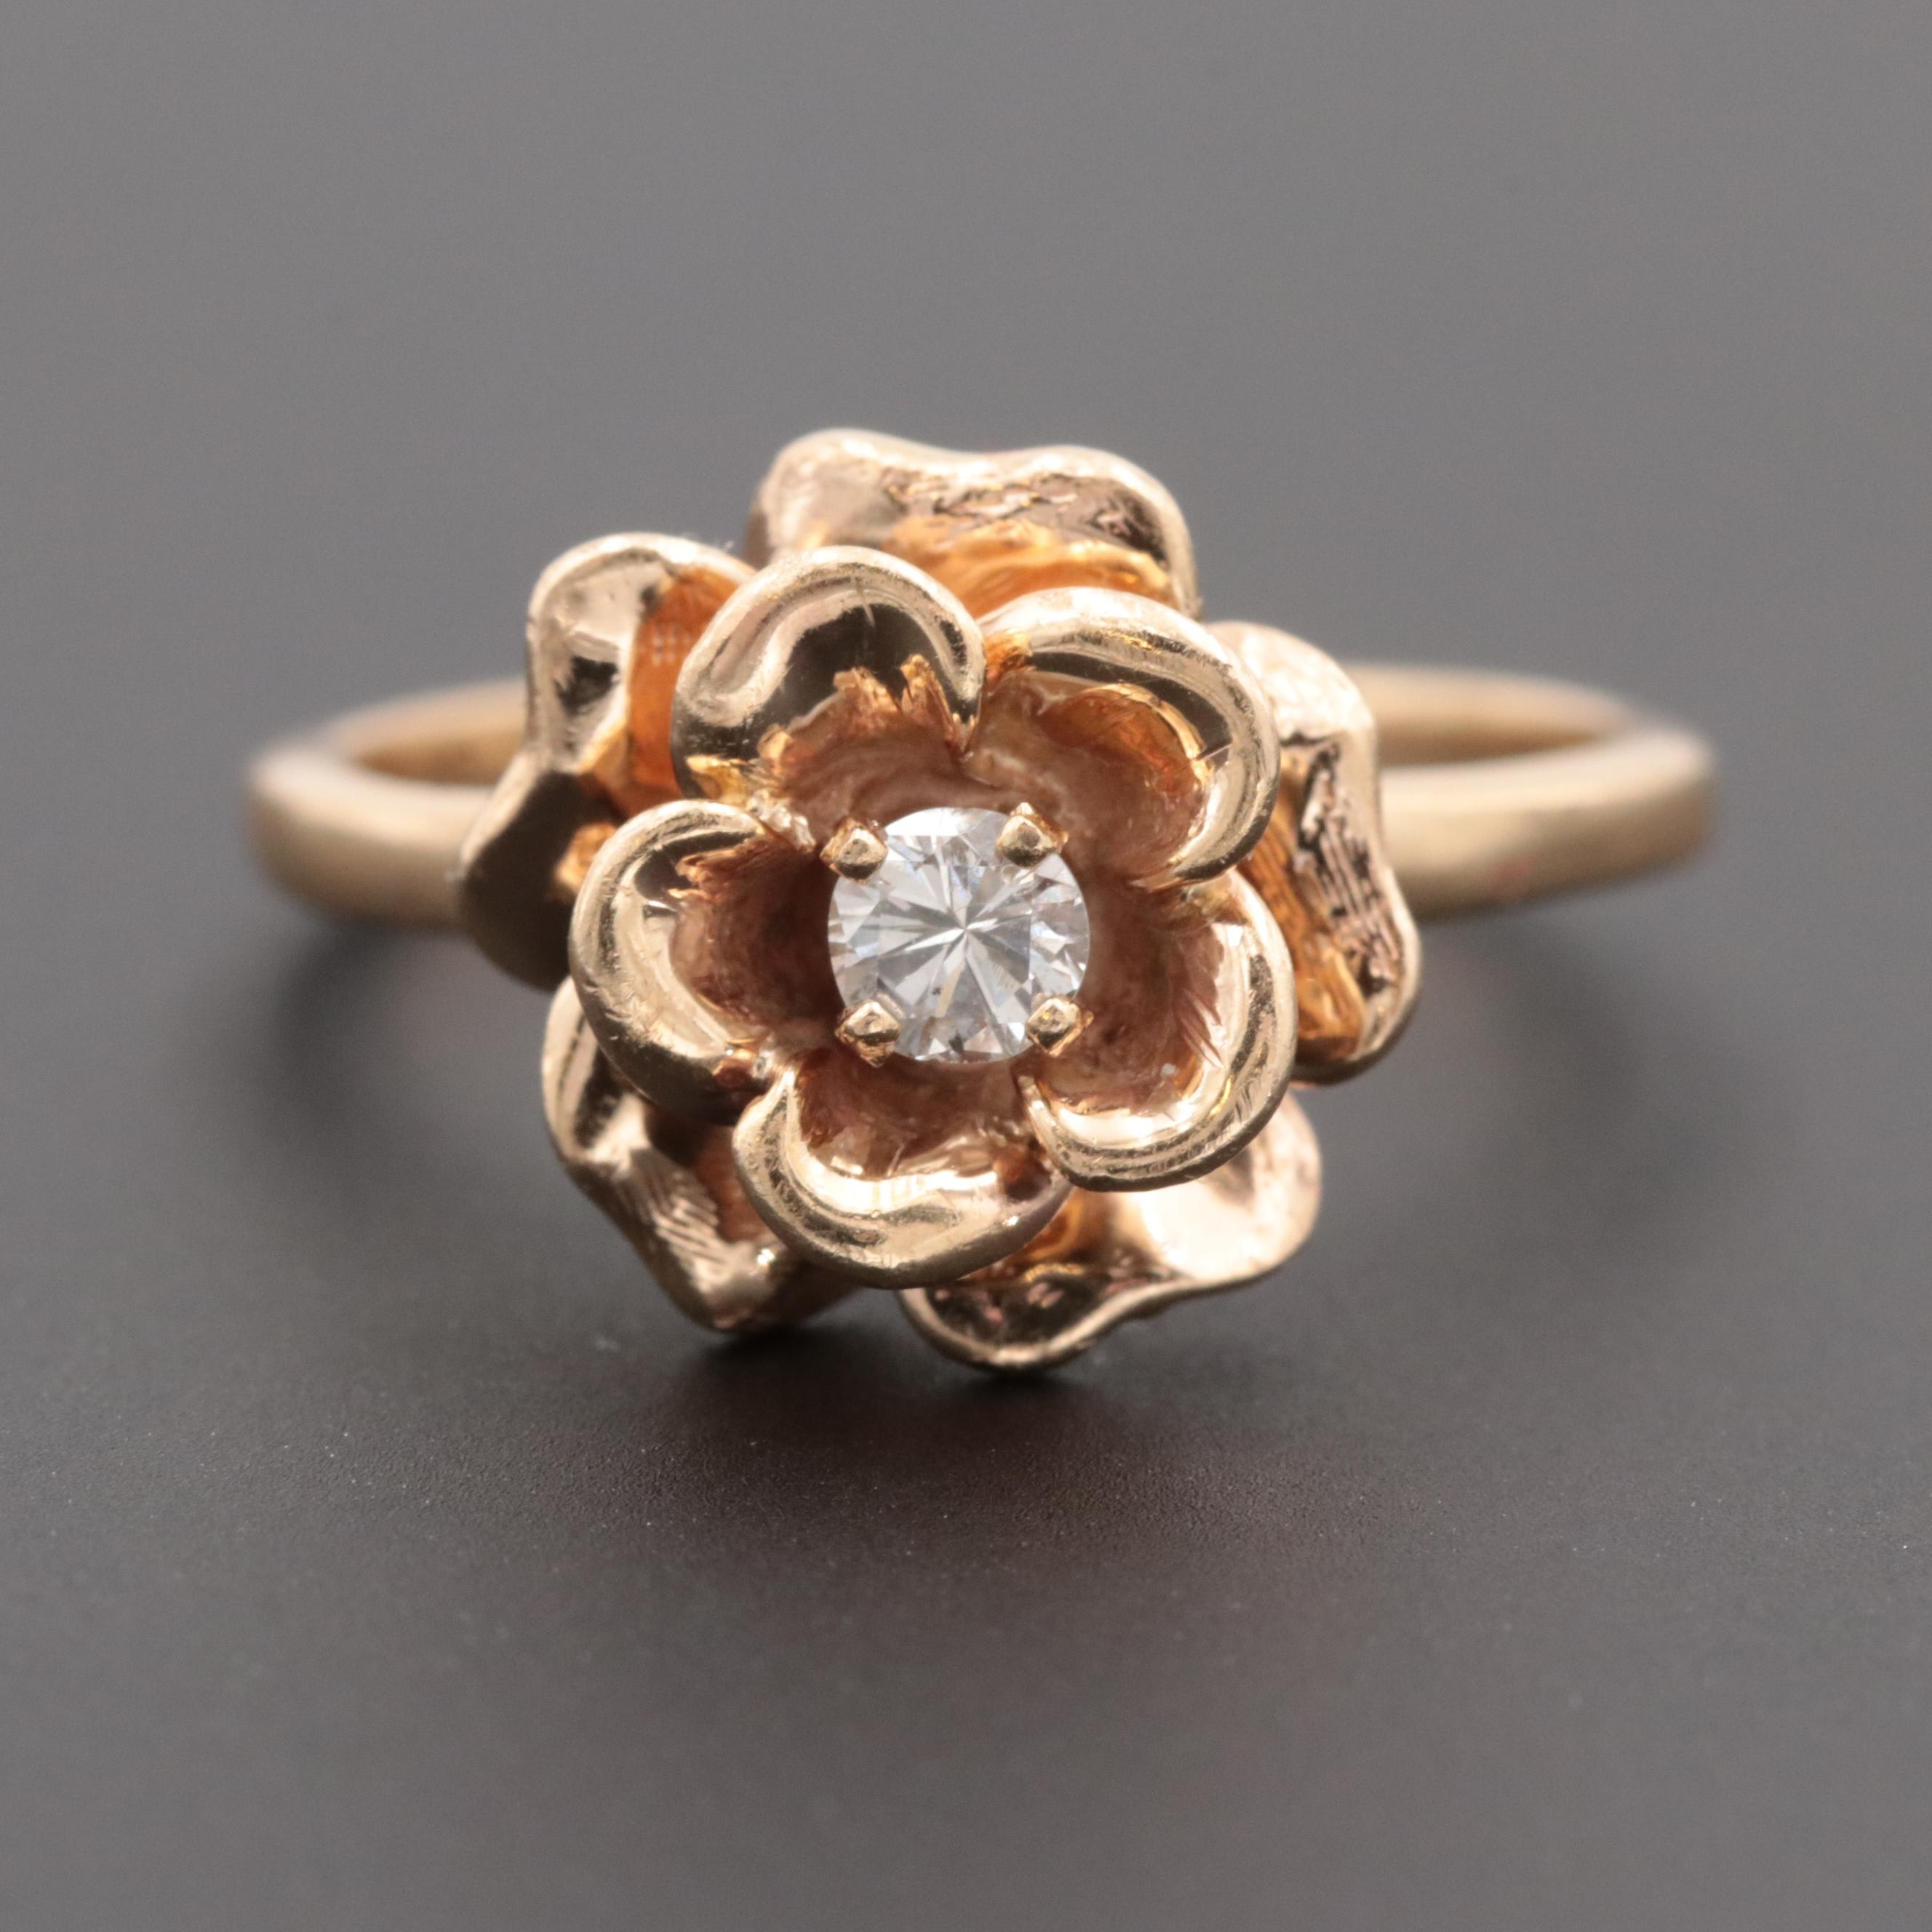 14K Yellow Gold Diamond Flower Motif Ring